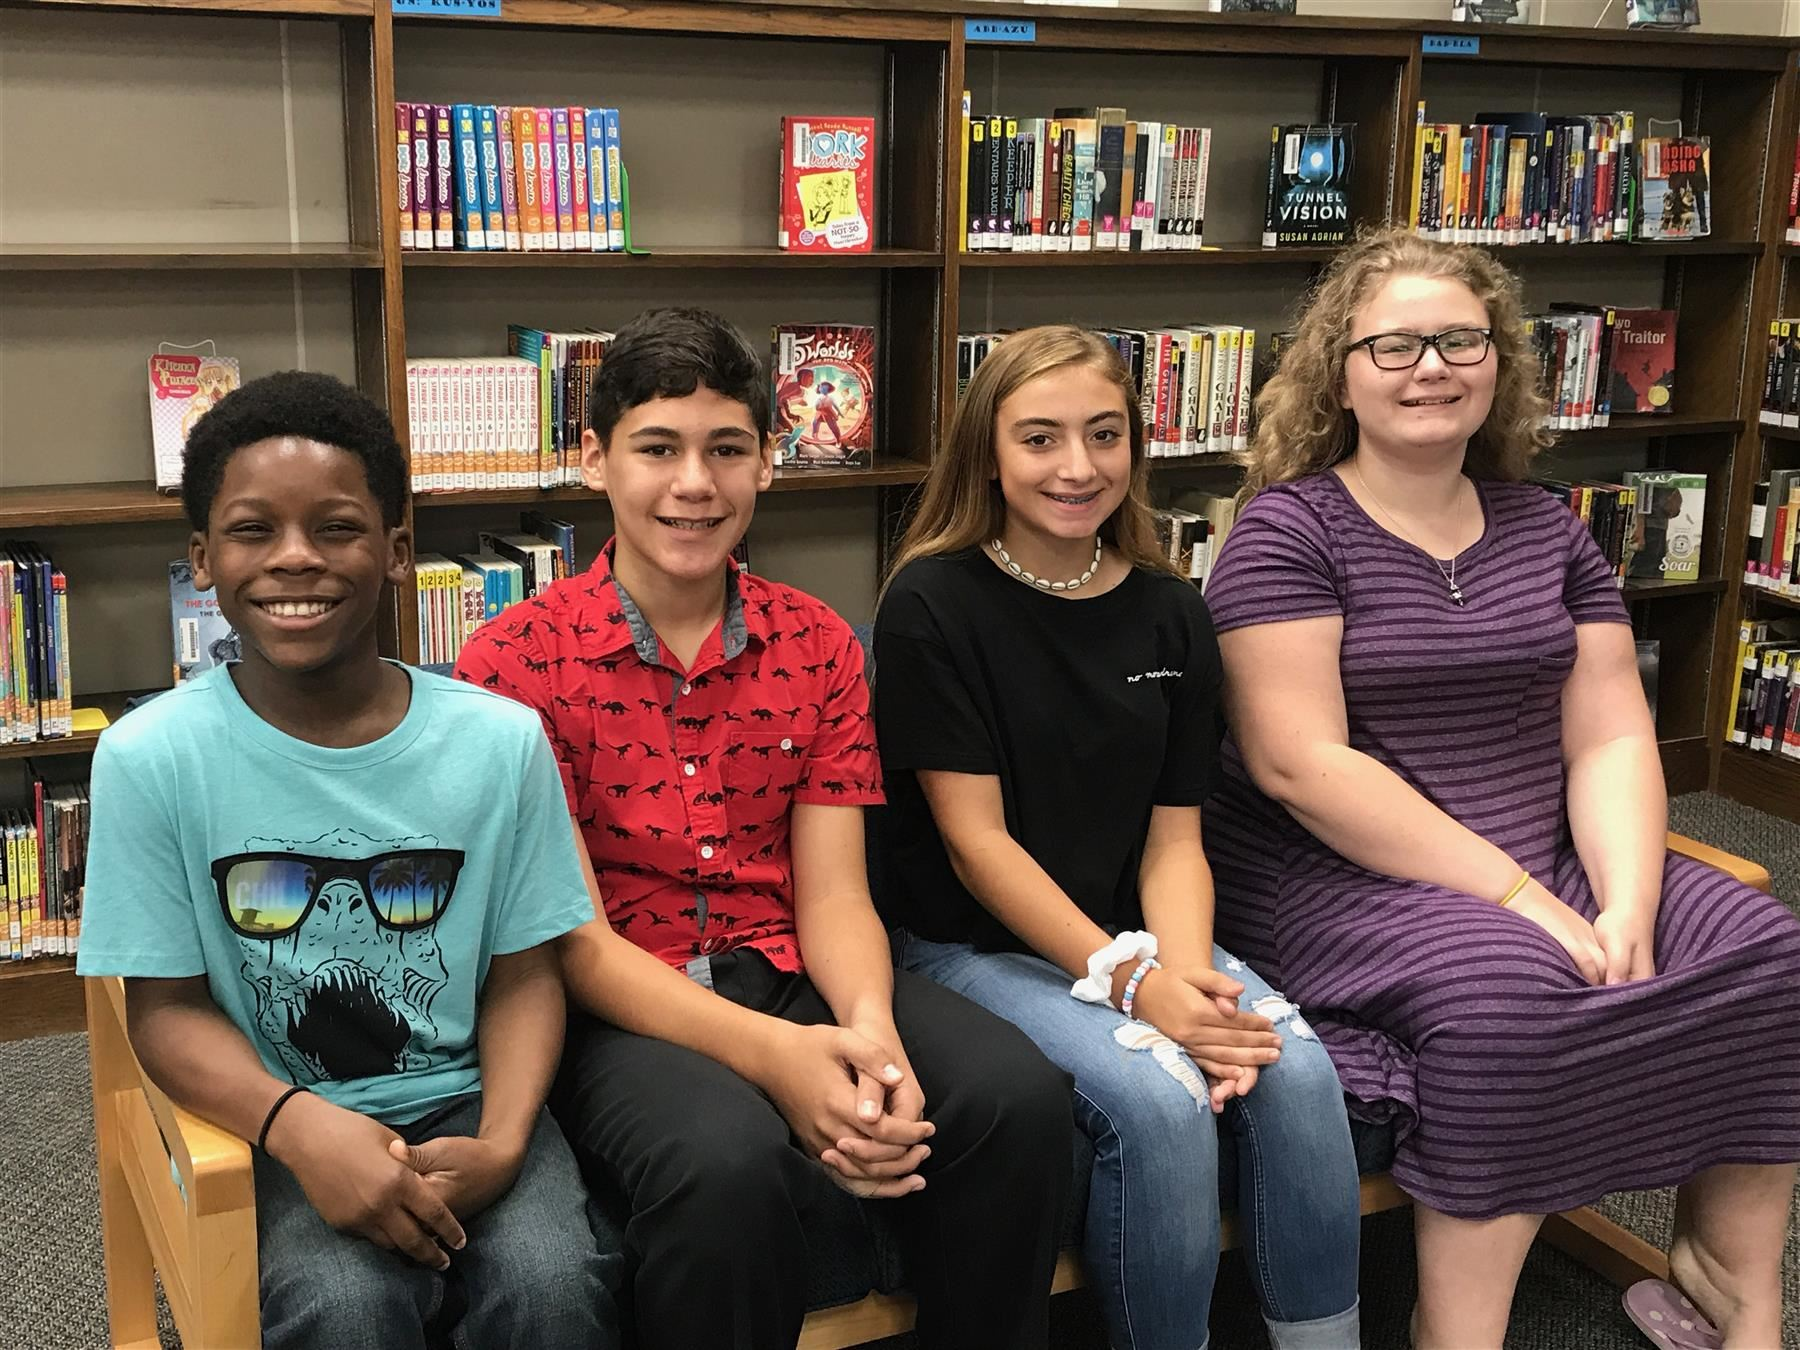 September Students of the Month Who Display Respect: Jaiden Charles (6th), Anthony Guadagno (7th), Sydney Williams (8th), and Lila Buchan (Fine Arts).  Click here to read why each student was selected for this honor.